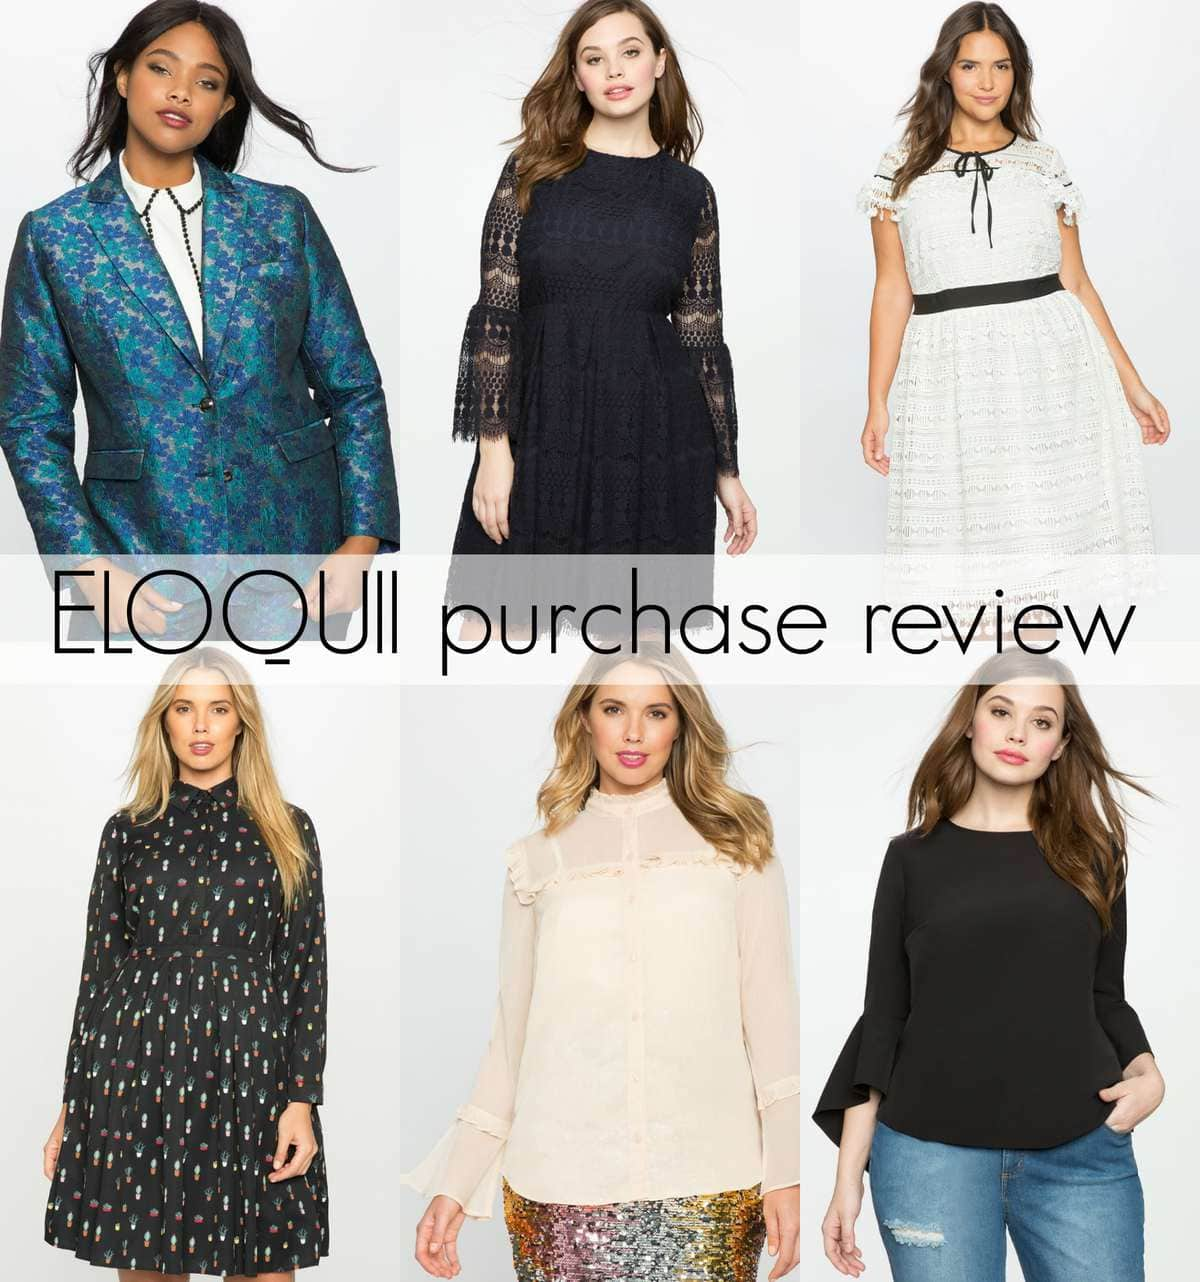 Wardrobe Oxygen - ELOQUII purchase review hits and misses